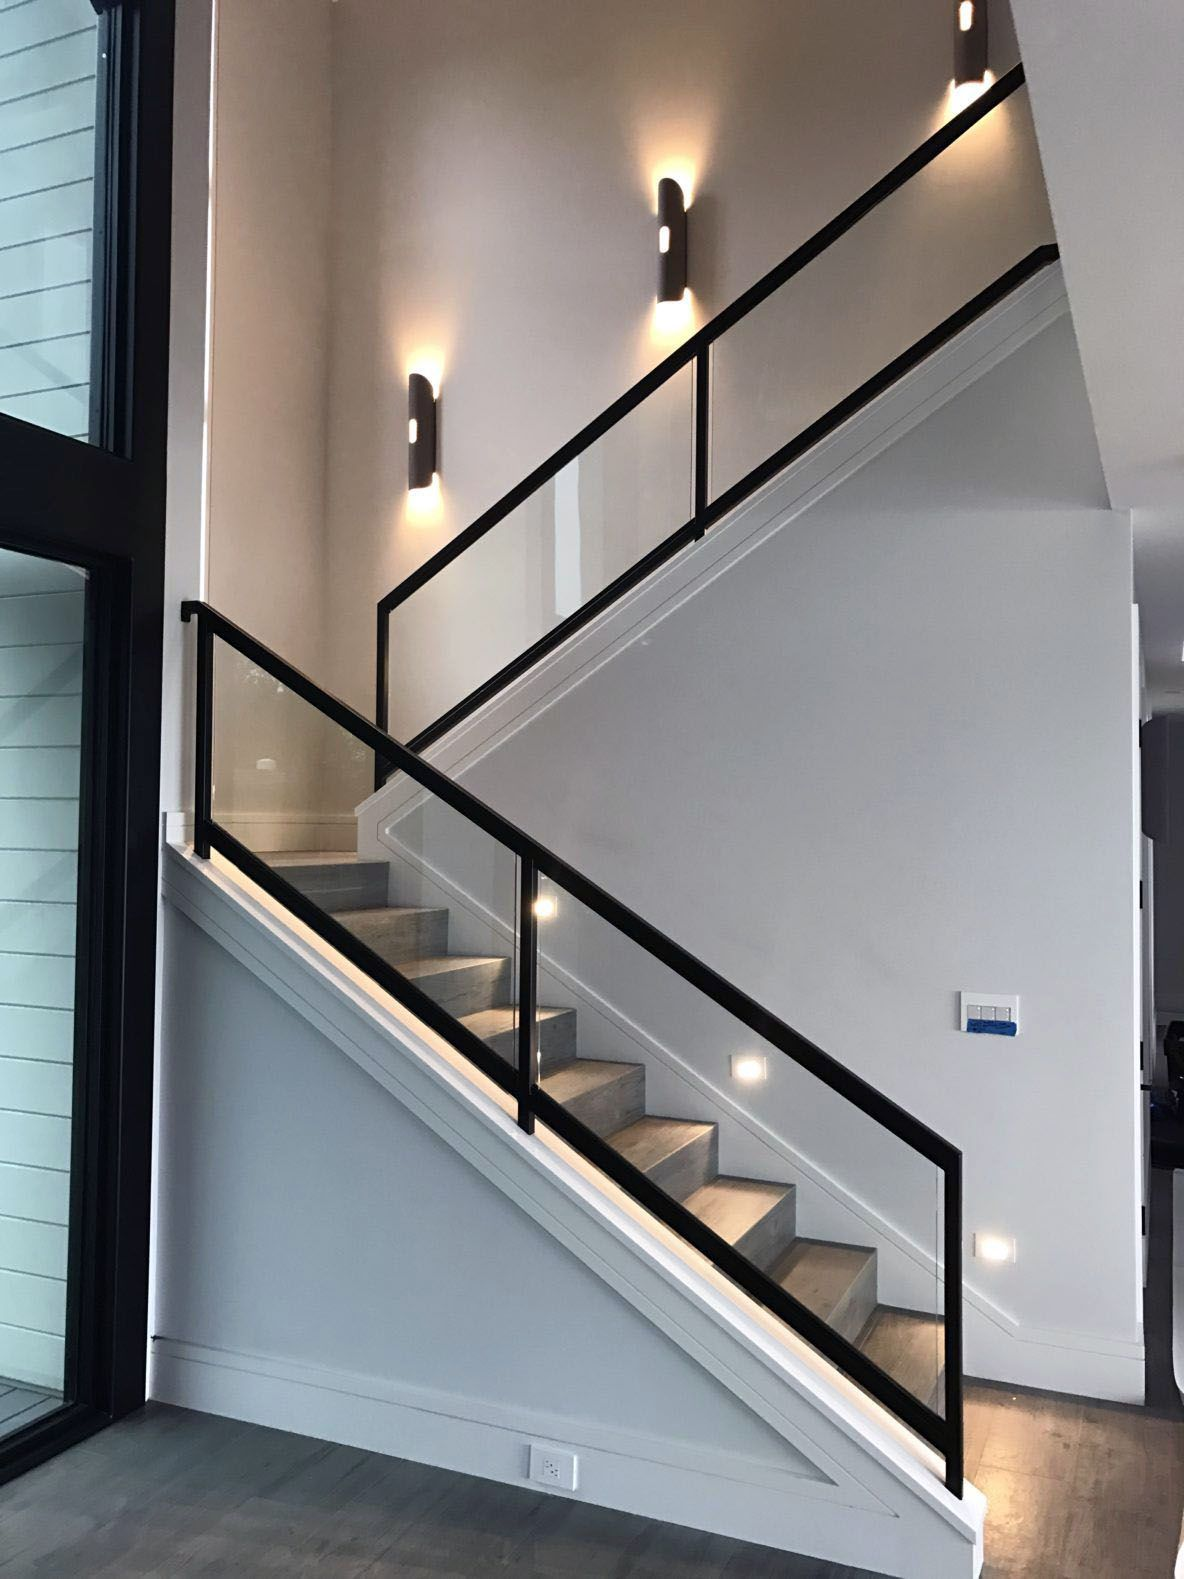 The Next Level 14 Stair Railings To Elevate Your Home Design Home Stairs Design Stair Railing Design Stairs Design